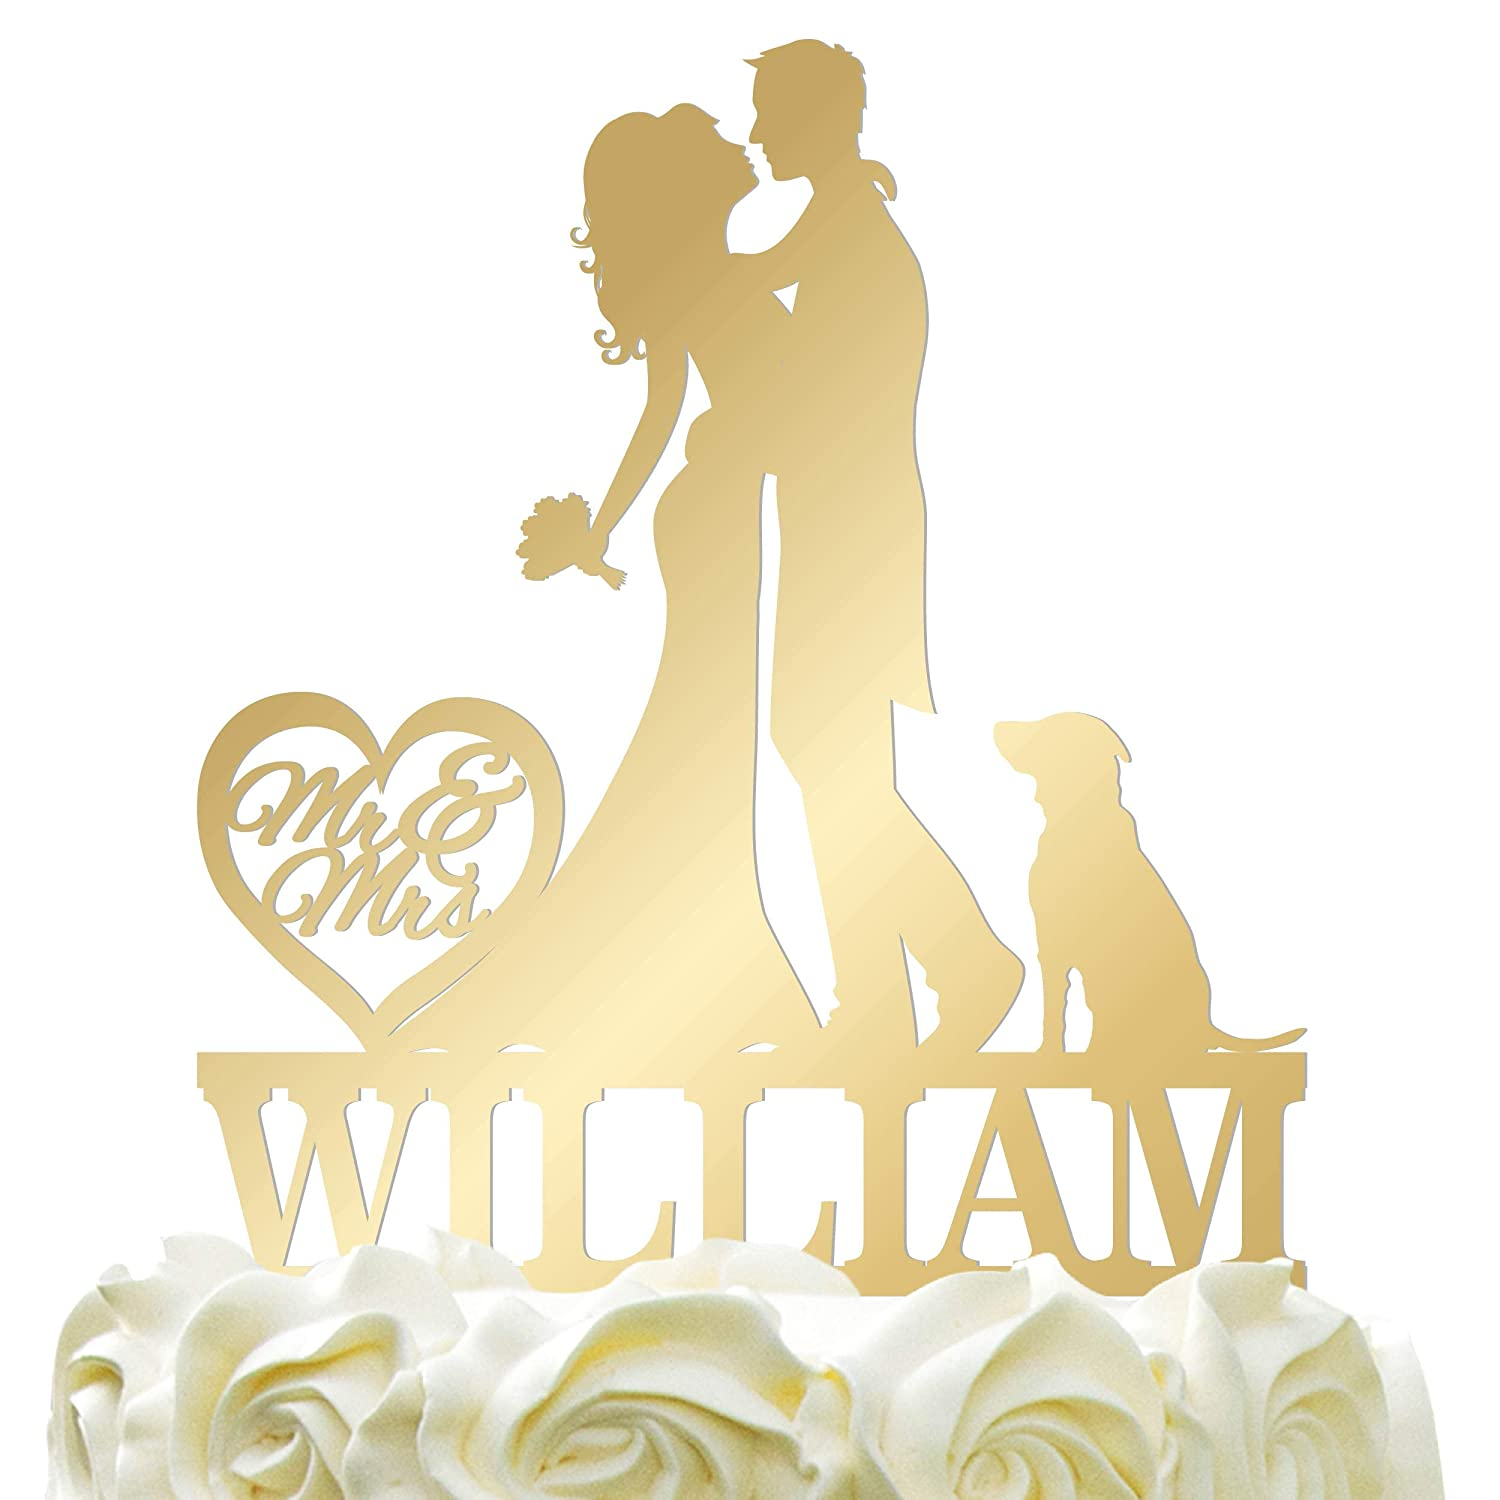 Personalized Bride & Groom Kissing, Hugging Silhouette Wedding Cake Topper - Wedding Cake Decoration Mr-Mrs Heart Last Name With DogMirrored Color